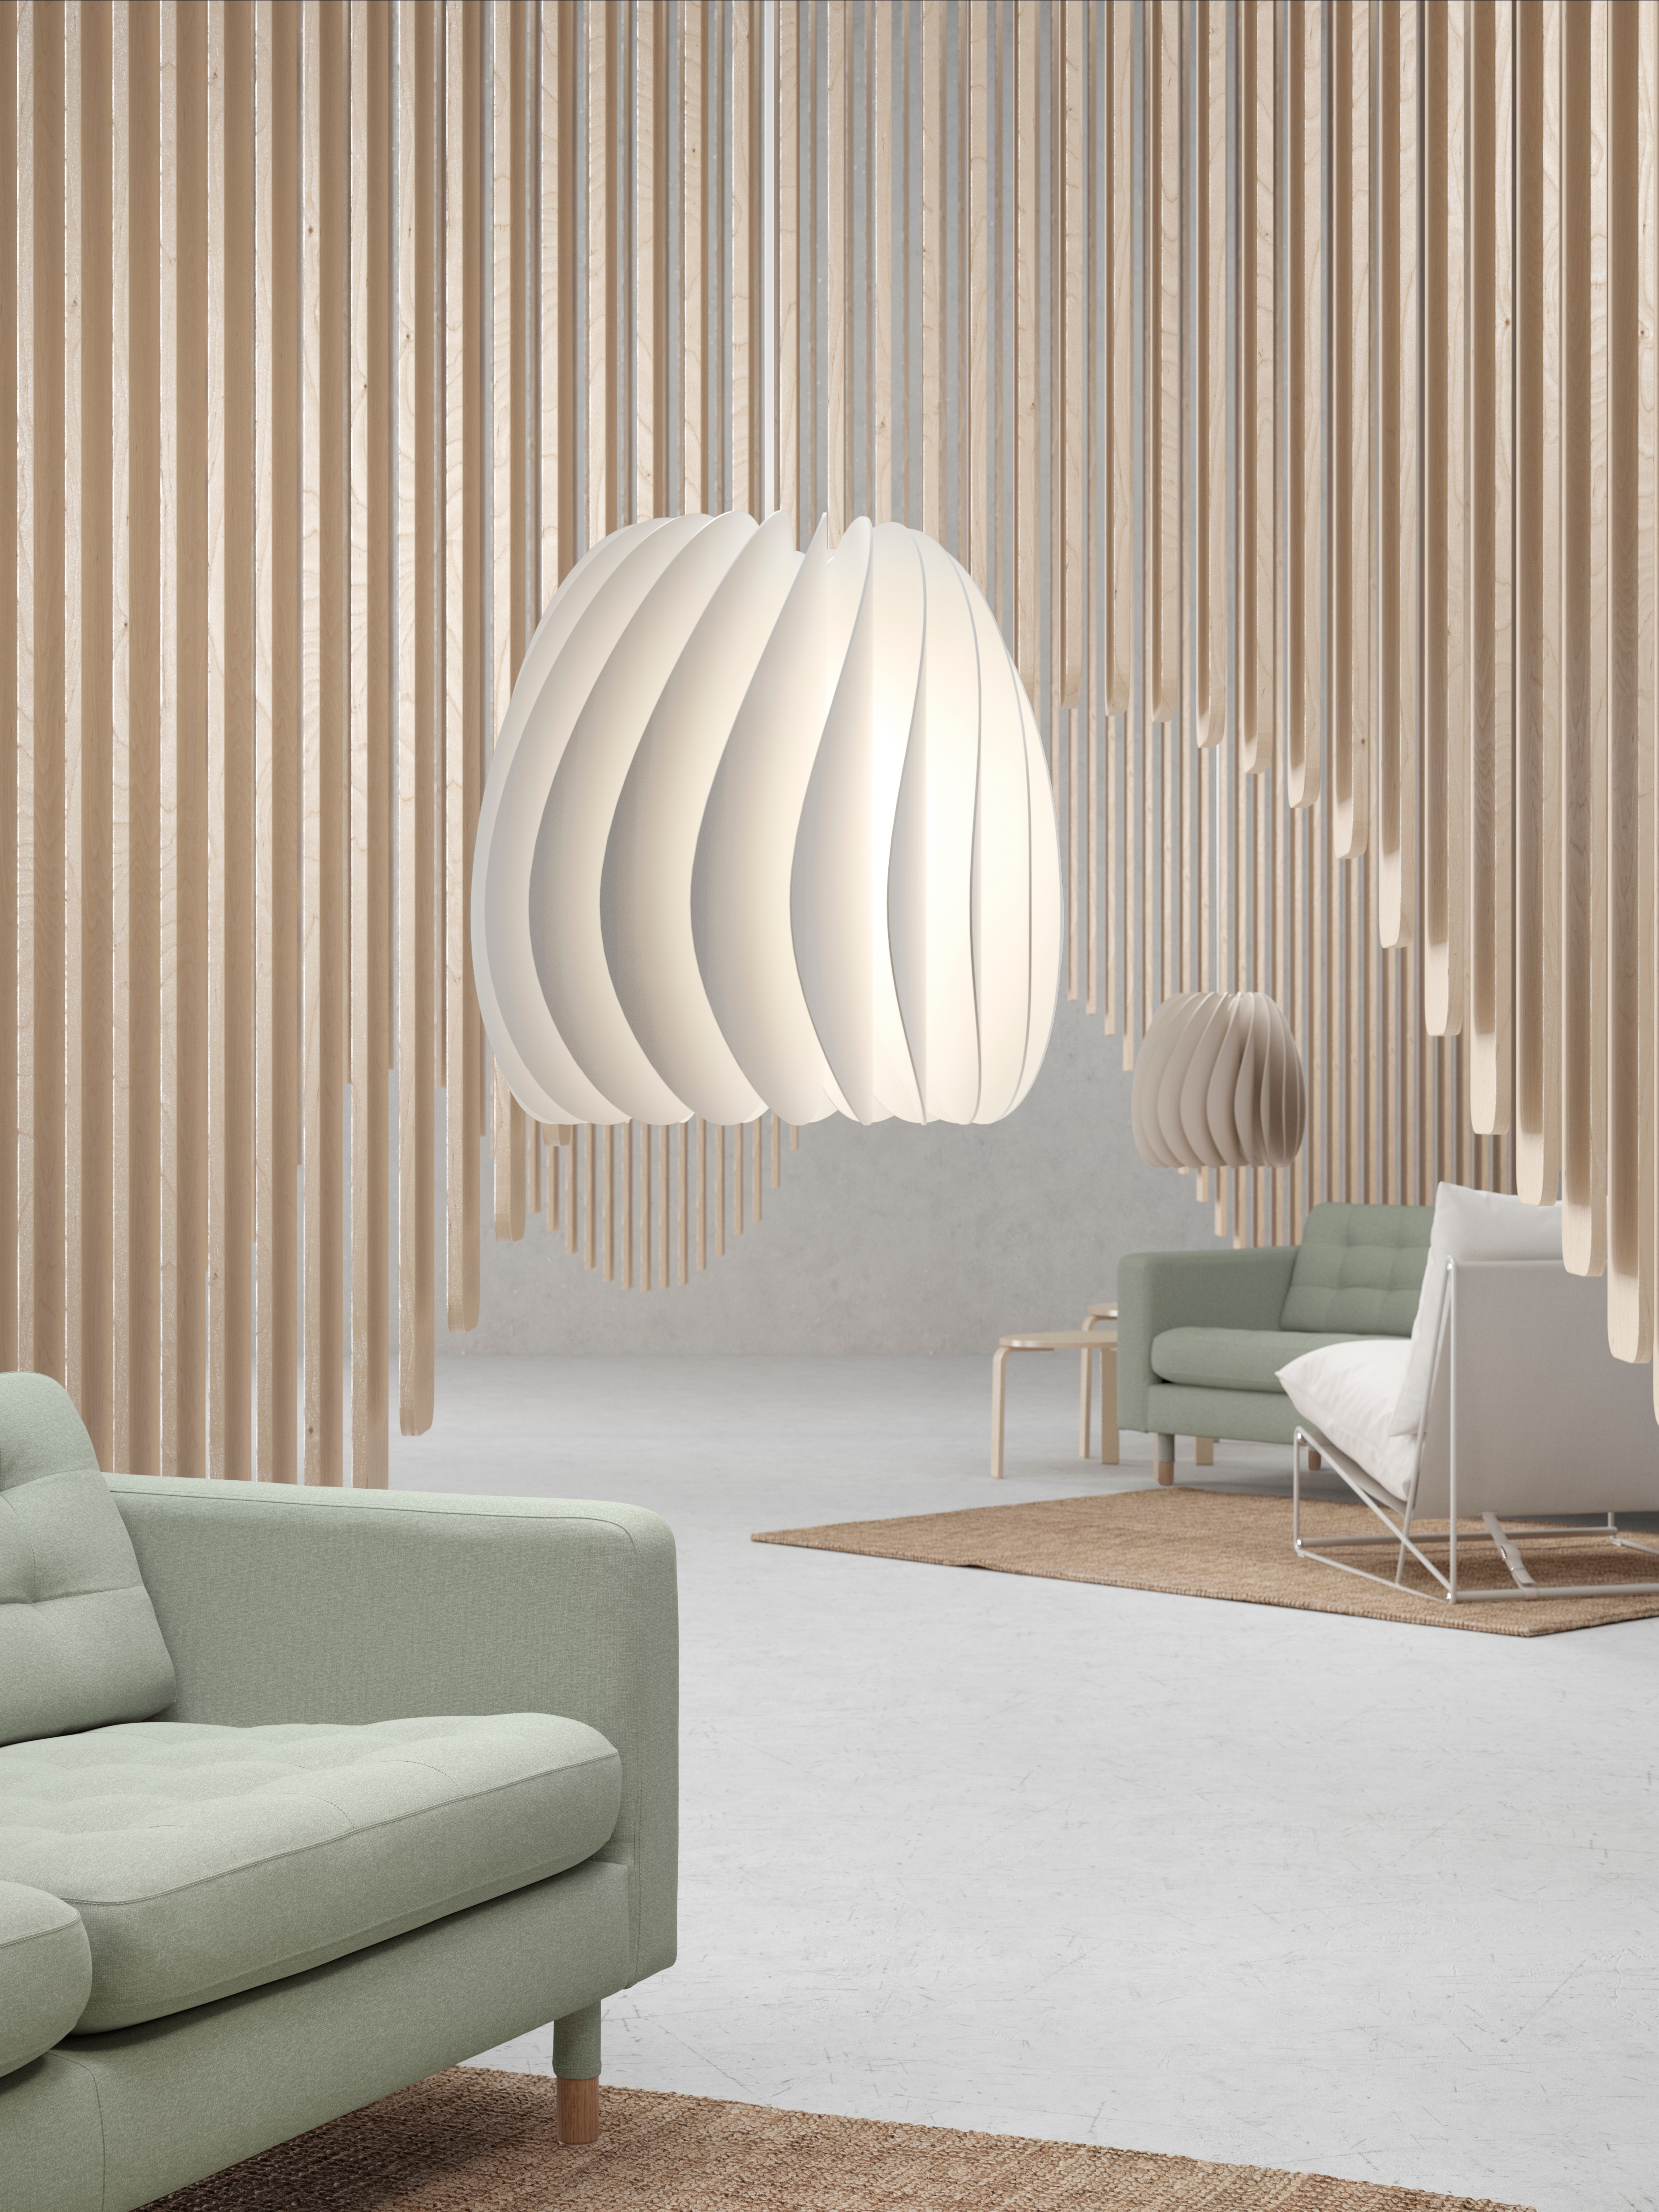 A display-style room with wood pieces extending from the ceiling by a white, turbine-shaped SKYMNINGEN pendant lamp and sofa.